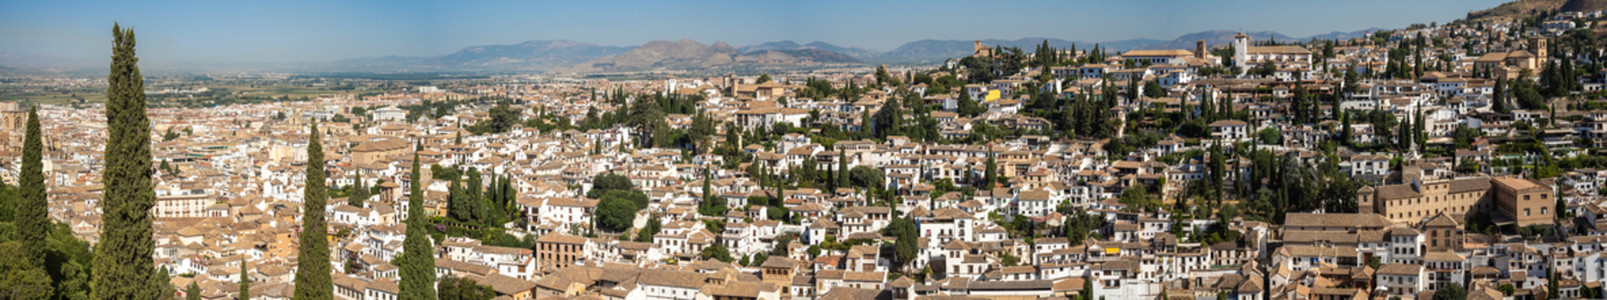 Albayzin district of Granada  Spain  from the towers of the Alhambra